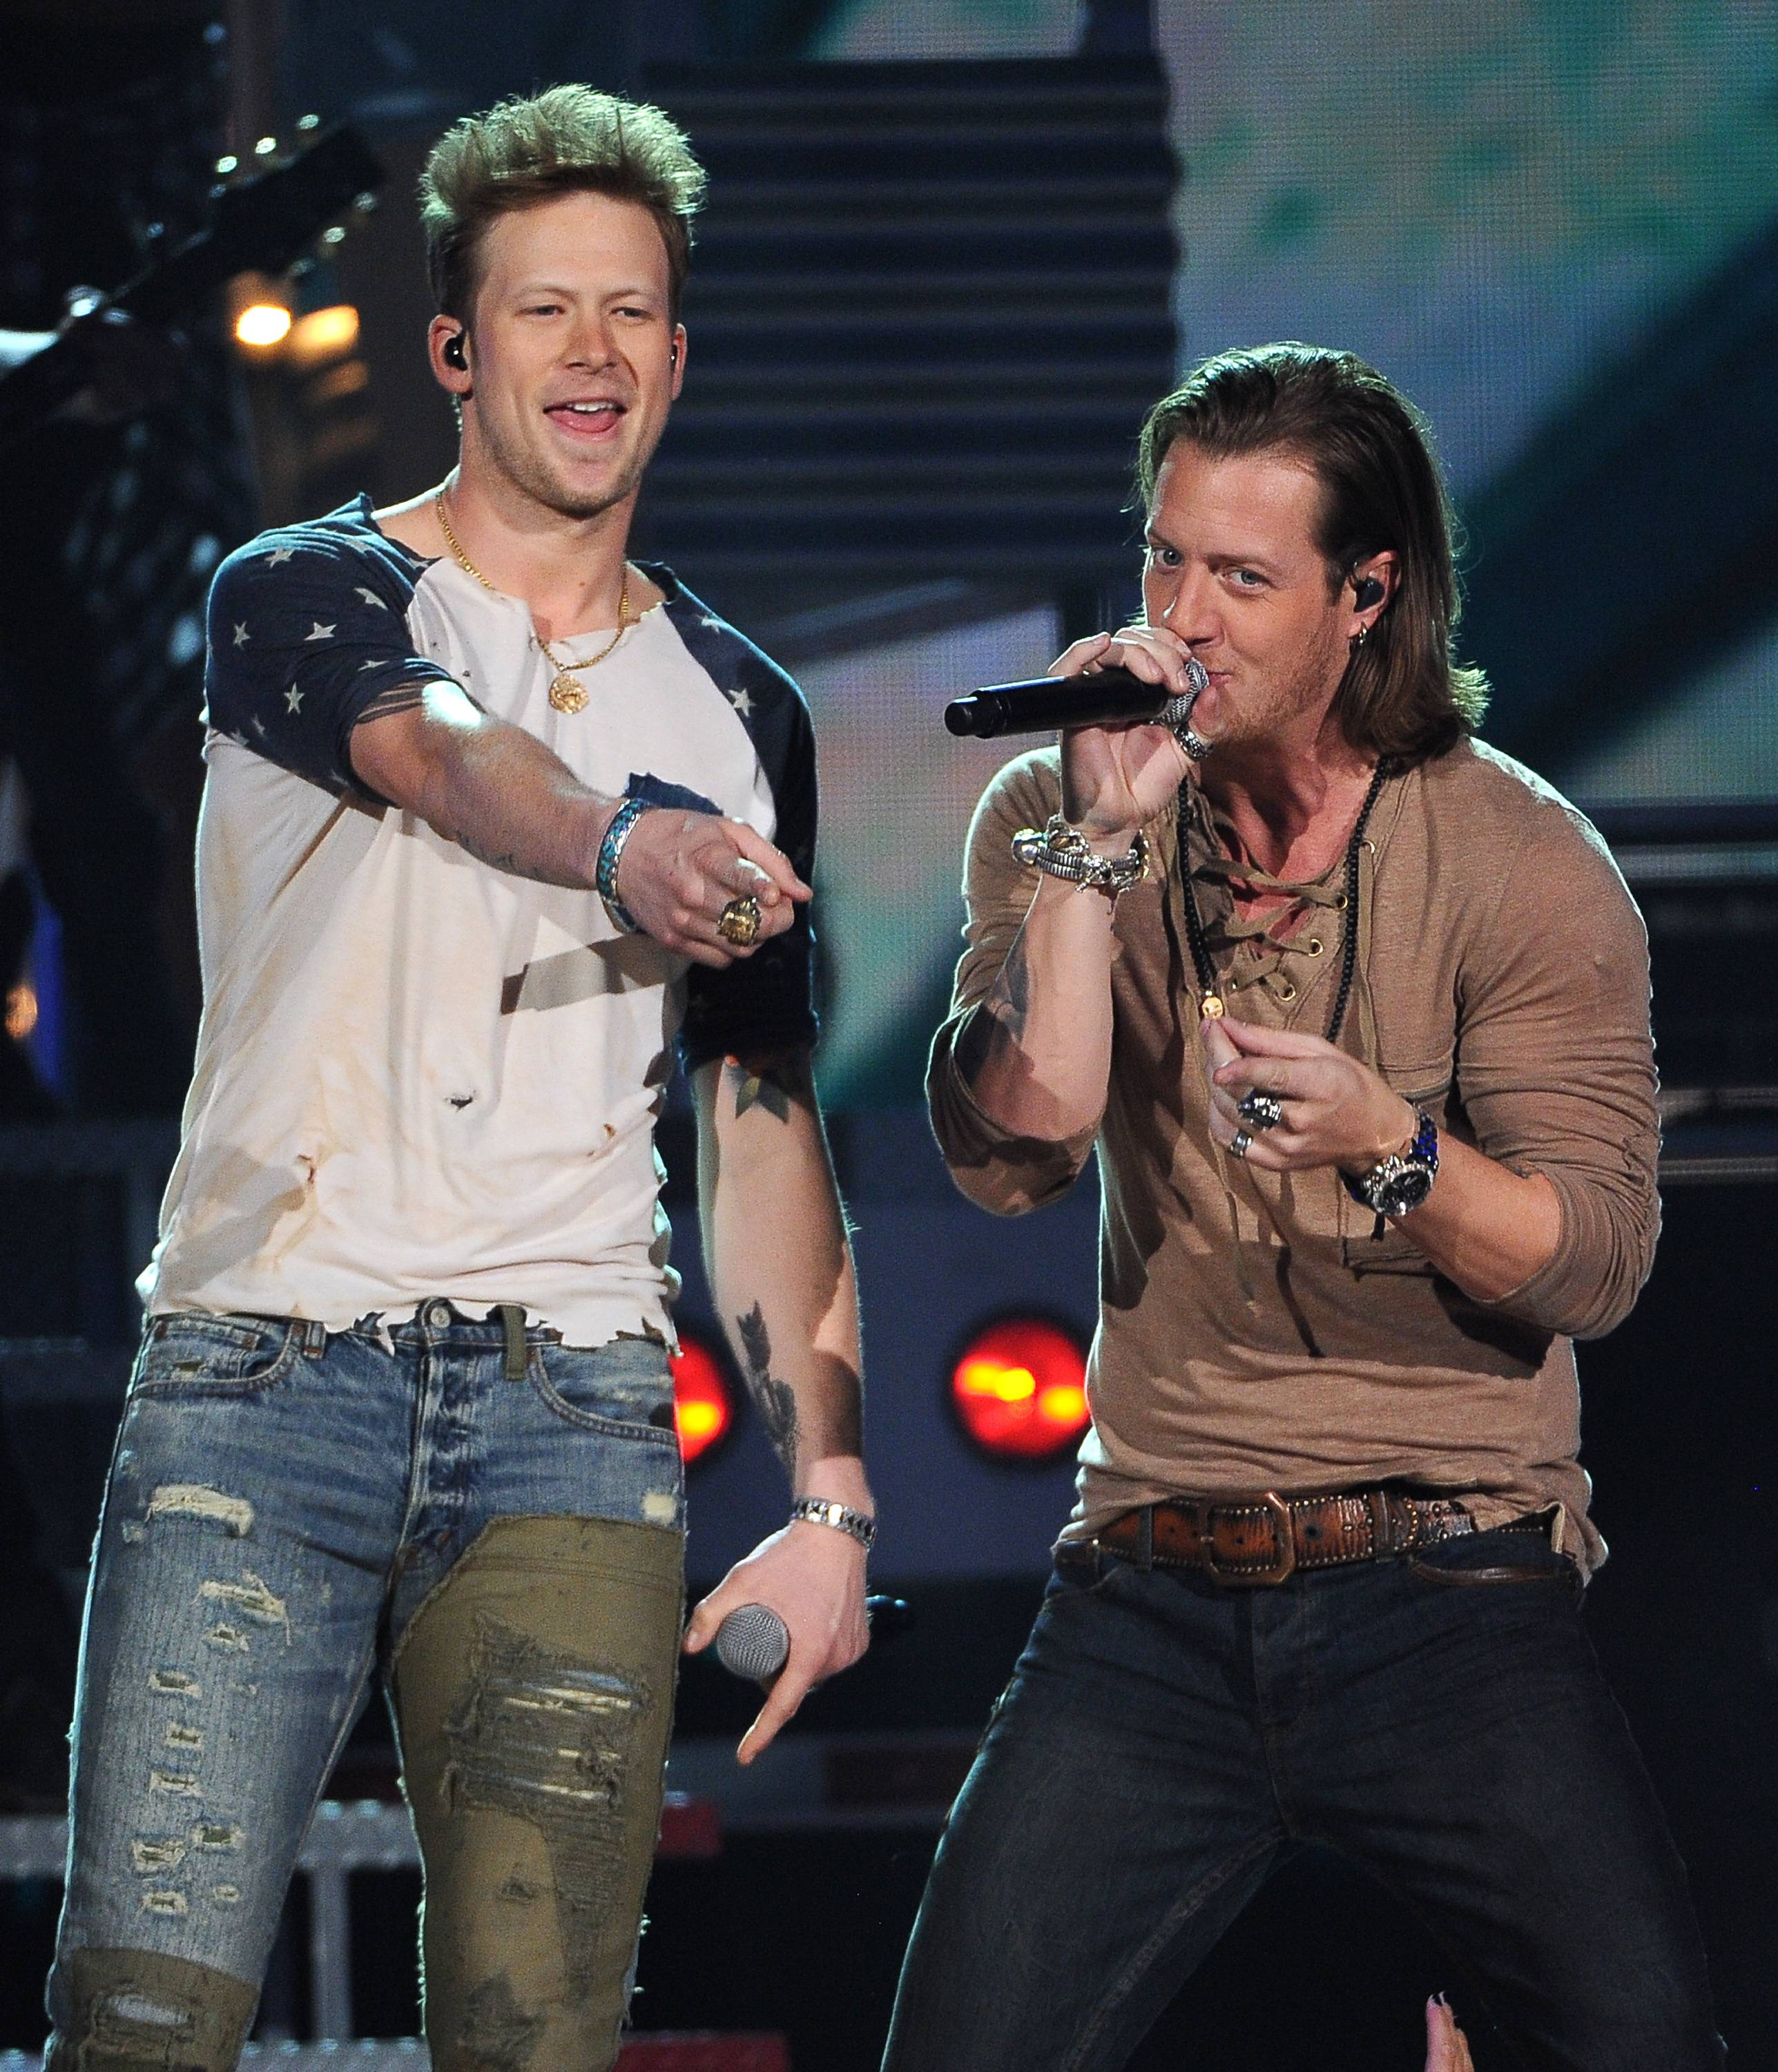 Brian Kelley, left, and Tyler Hubbard, of the musical group Florida Georgia Line, perform at the Billboard Music Awards at the MGM Grand Garden Arena on Sunday, May 18, 2014, in Las Vegas.